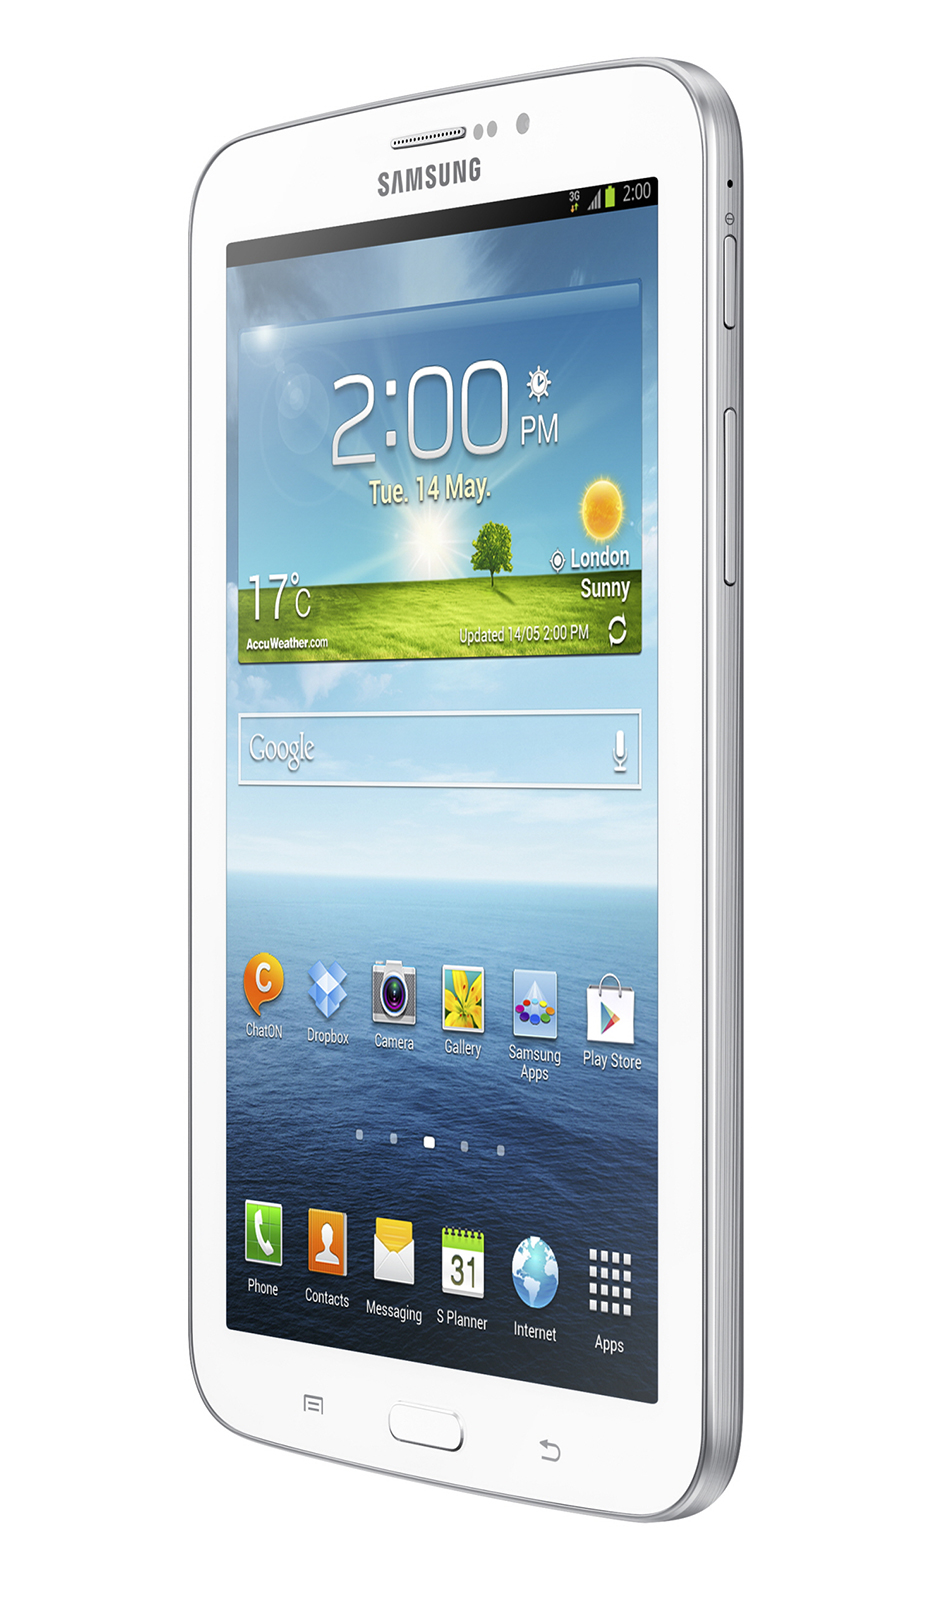 samsung galaxy tab 3 3g full tablet specifications comparison. Black Bedroom Furniture Sets. Home Design Ideas